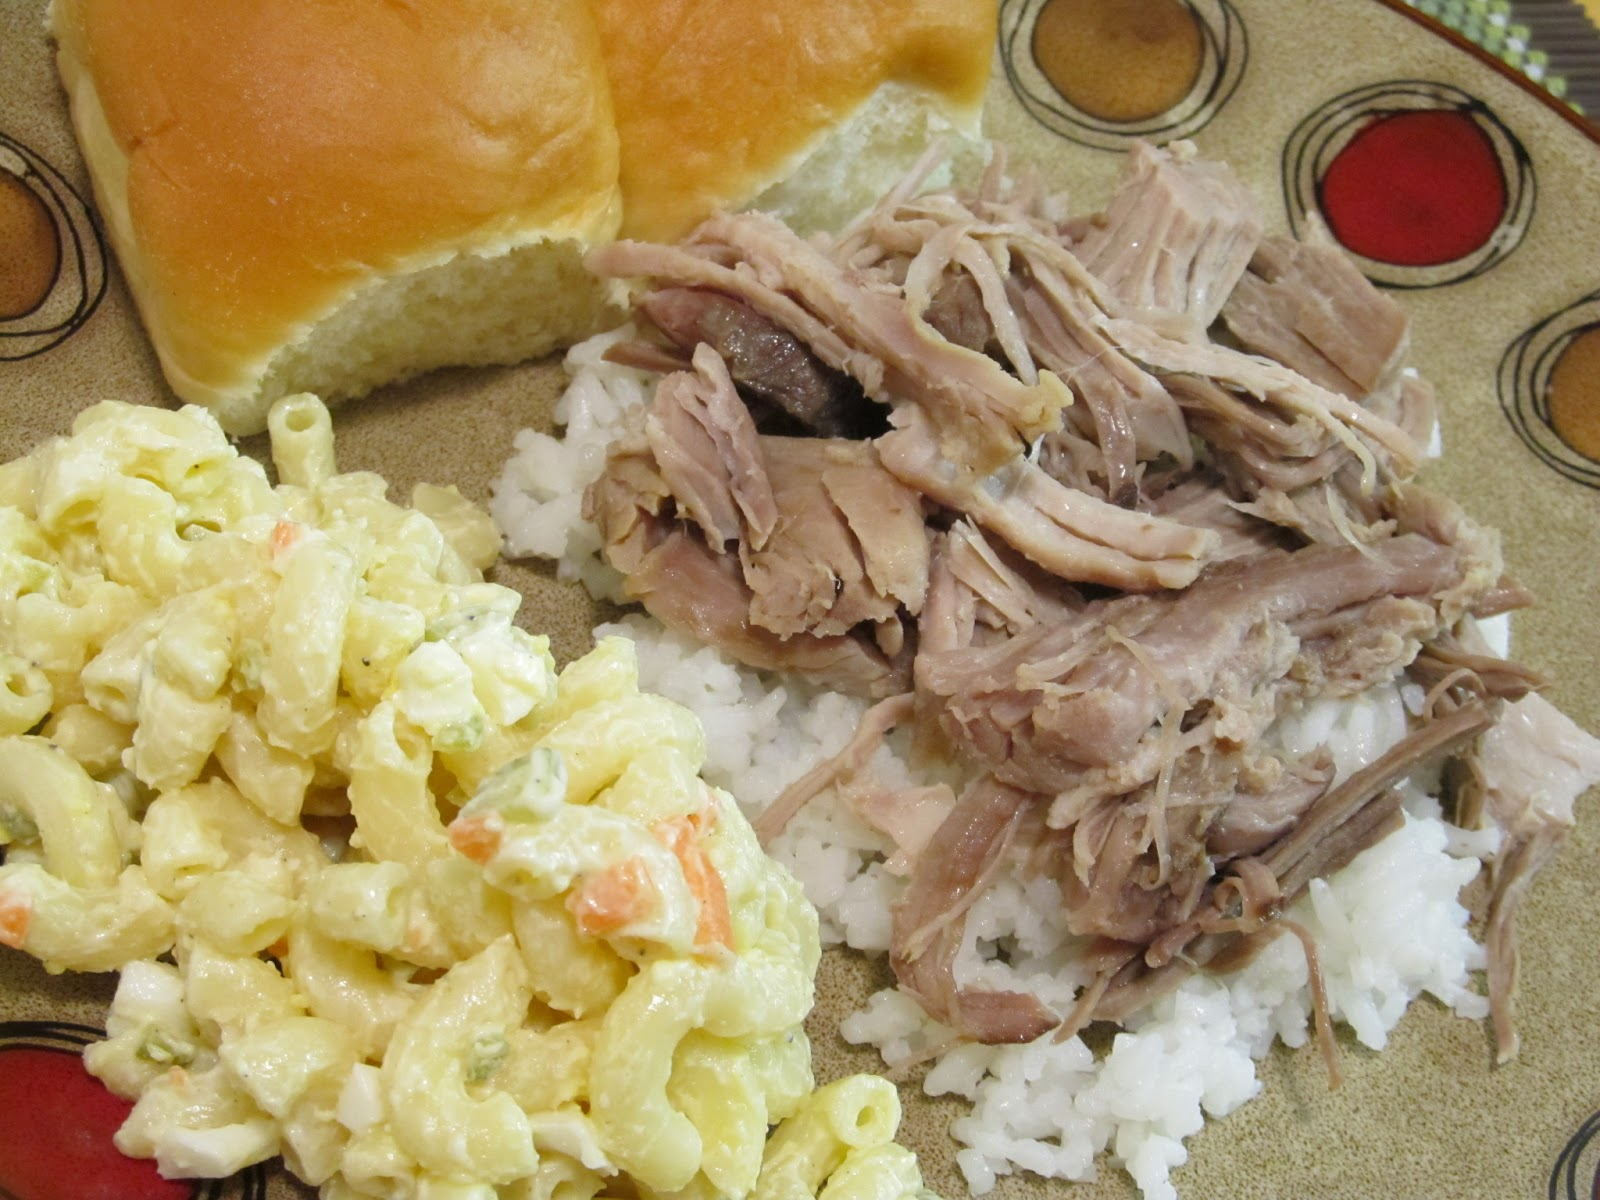 Jenn's Food Journey: Hawaiian Pulled Pork with Macaroni Salad